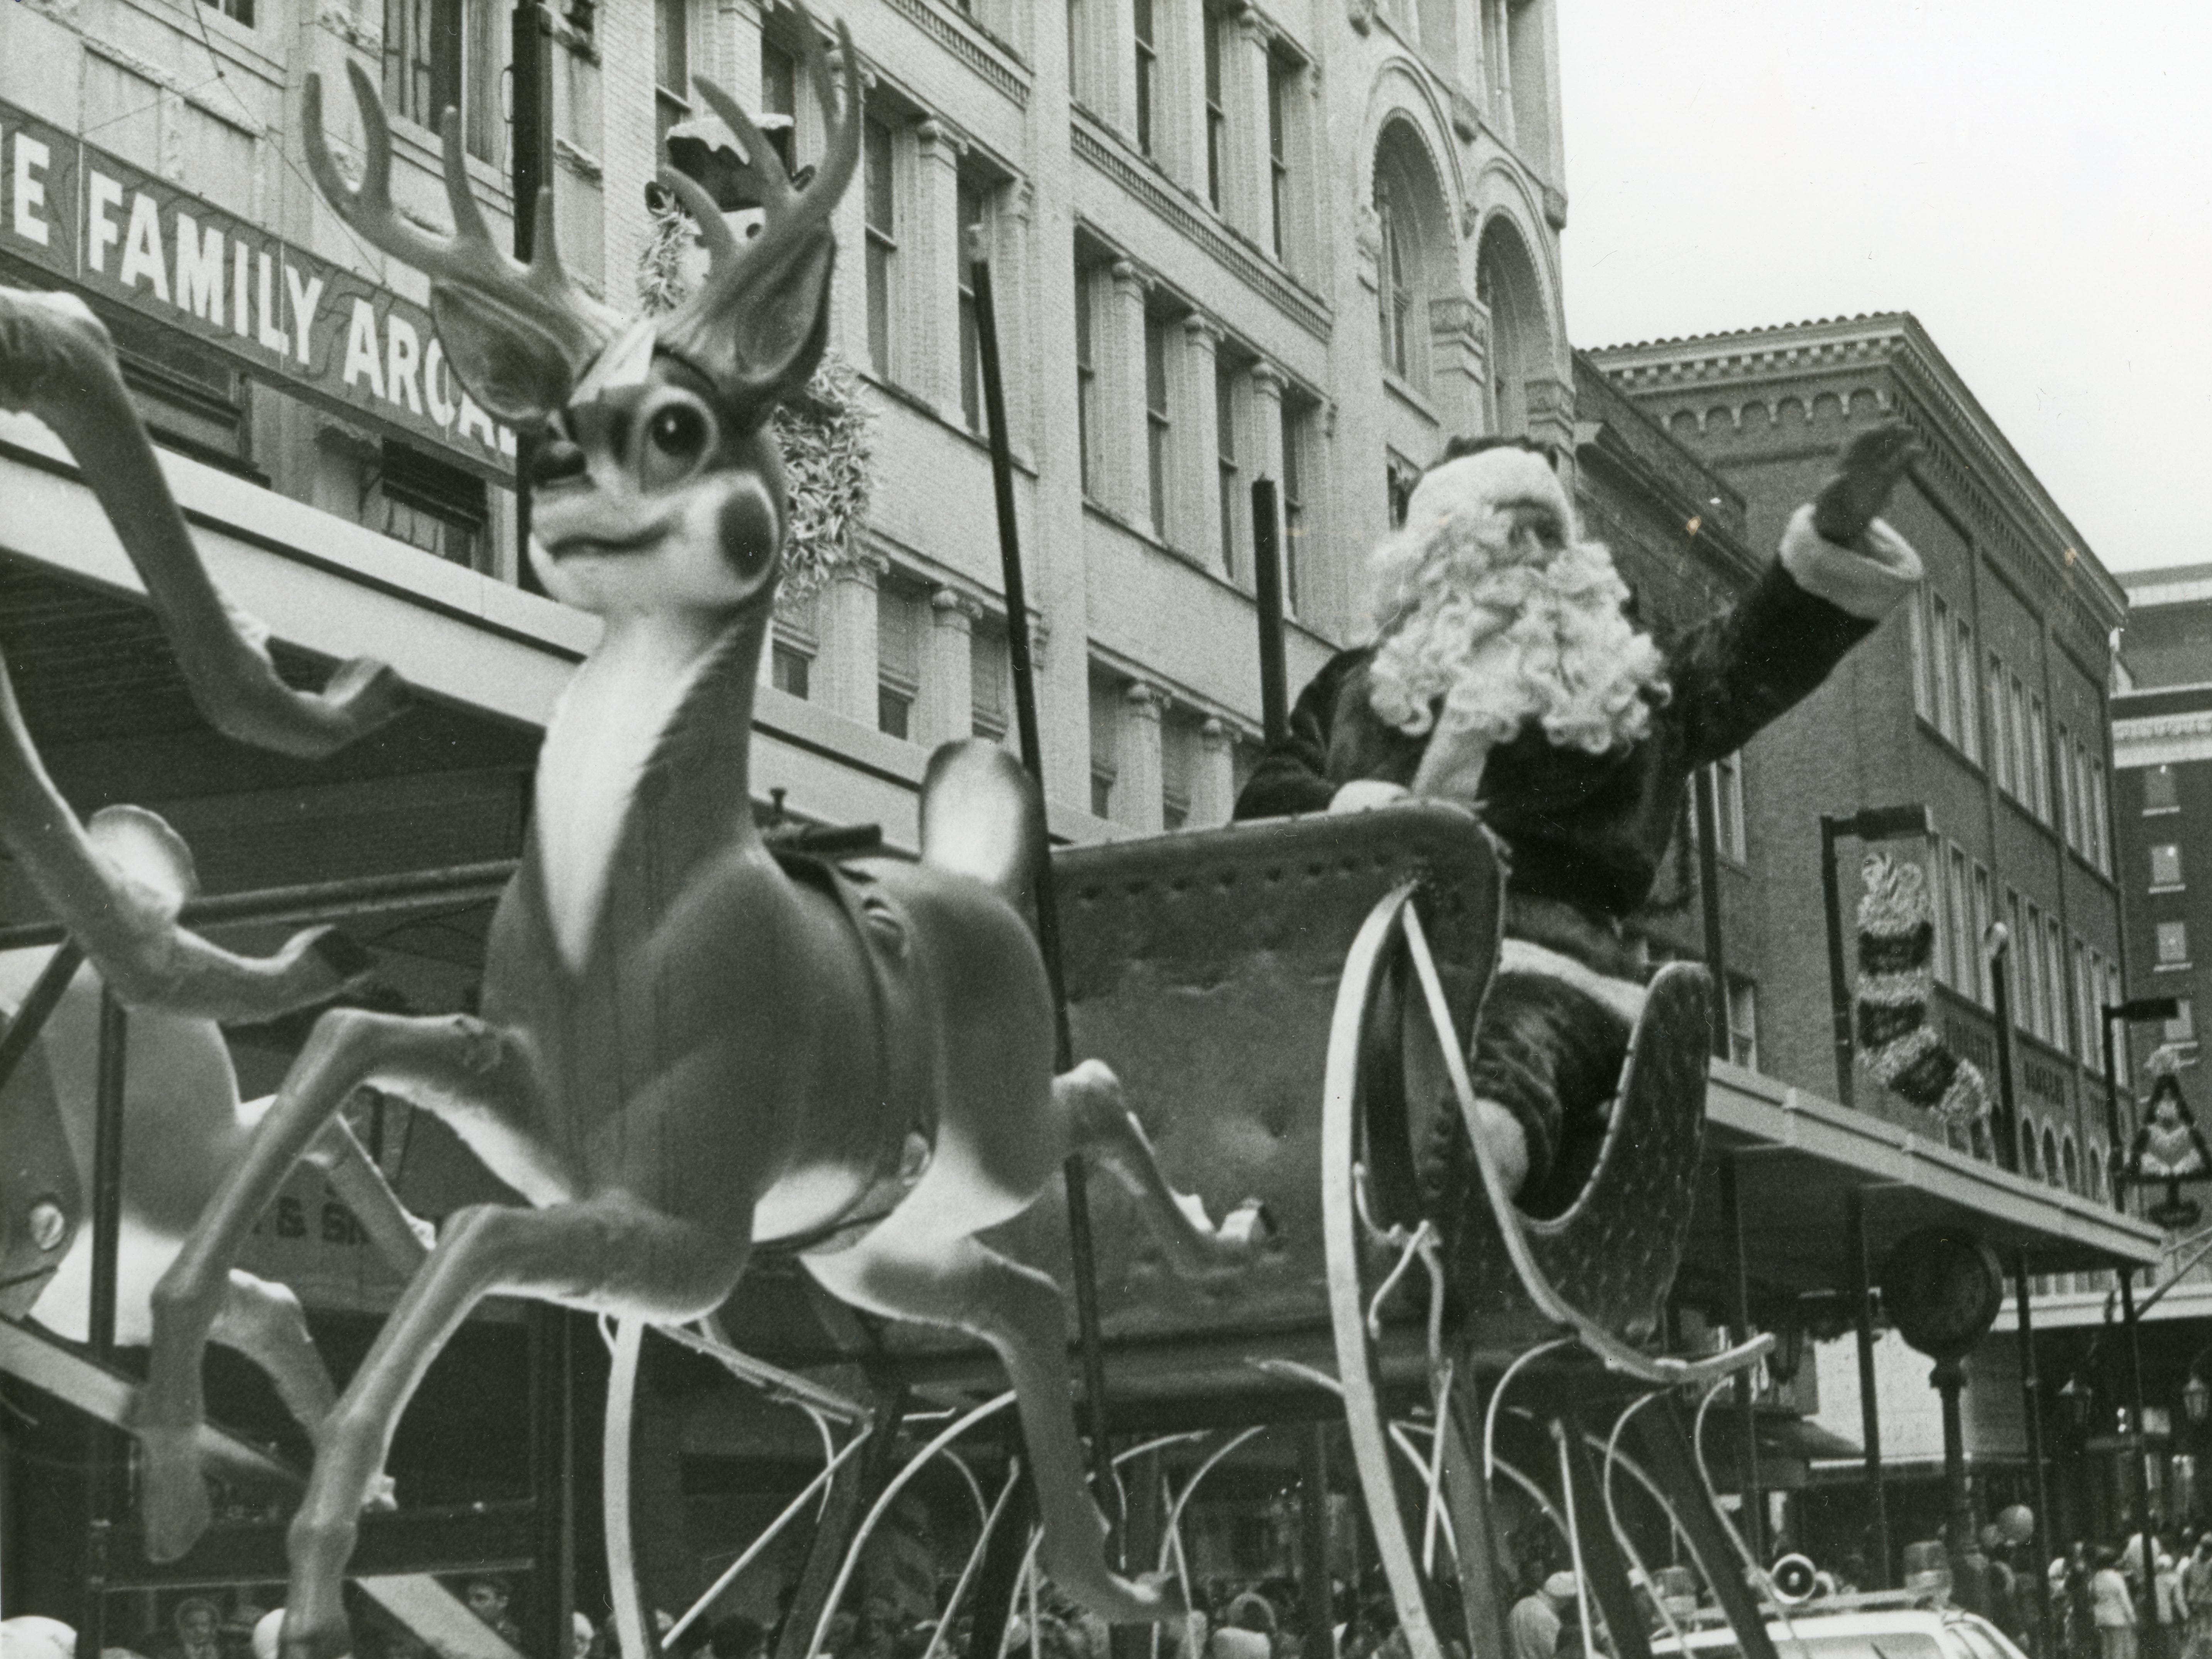 Santa rides his sleigh down Gay Street during the Knoxville Christmas parade in December 1978.